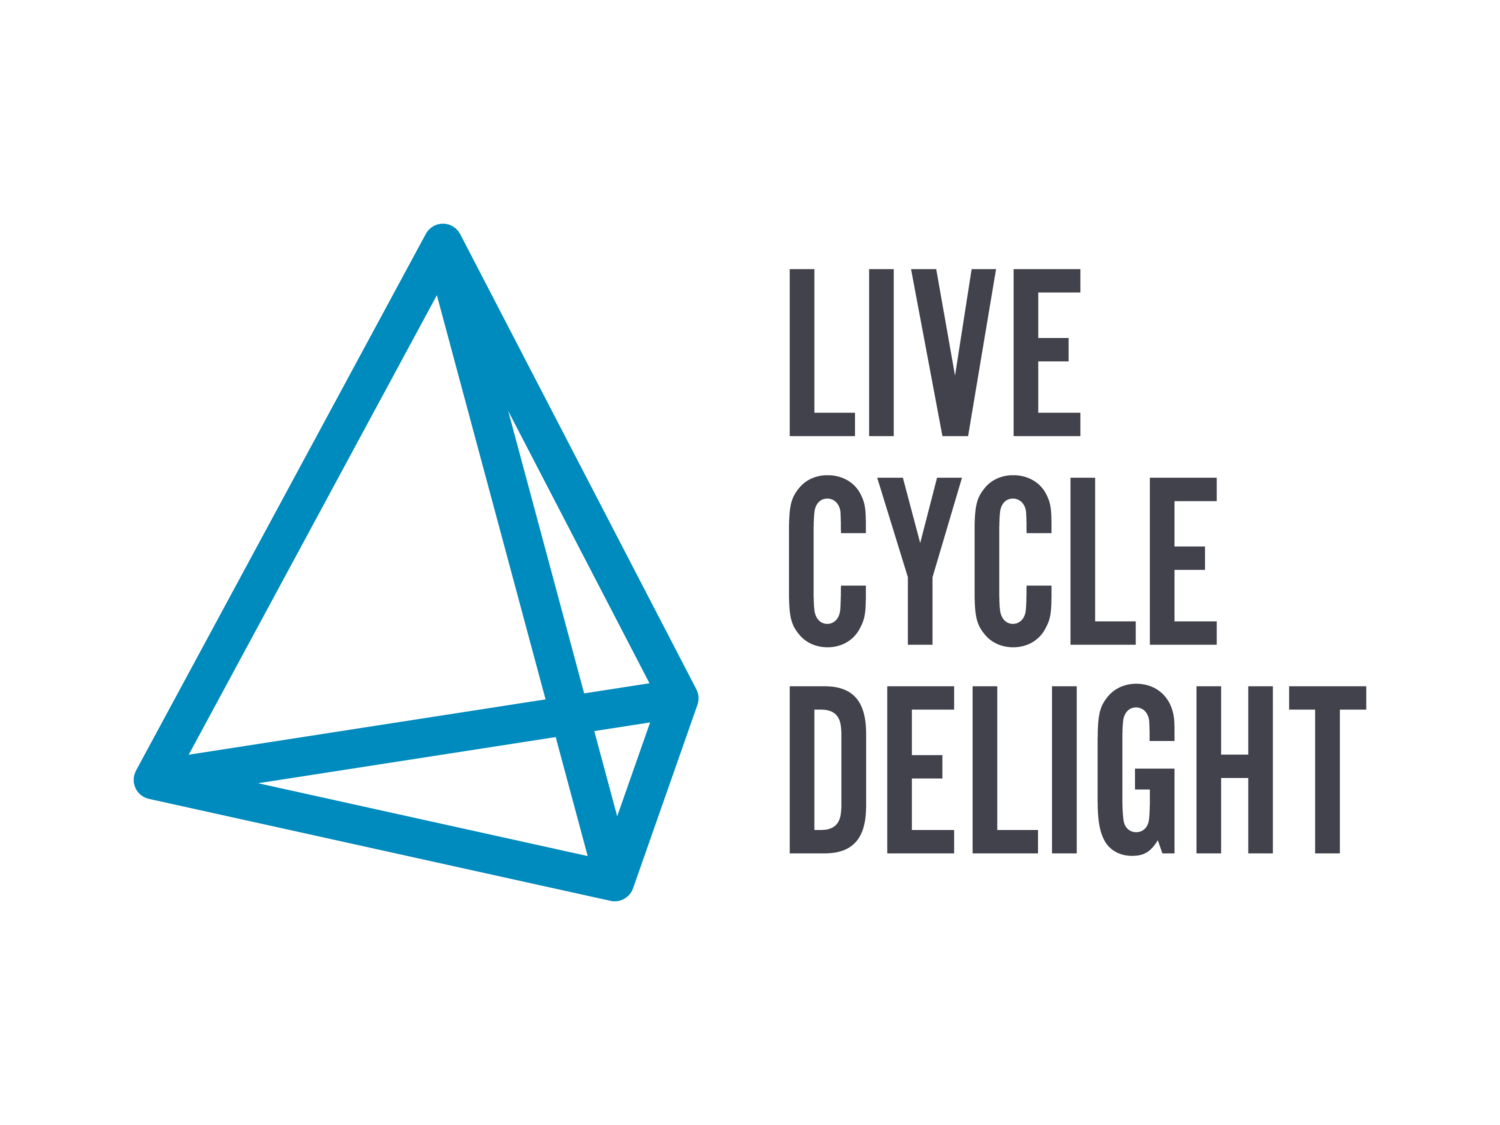 Live Cycle Delight